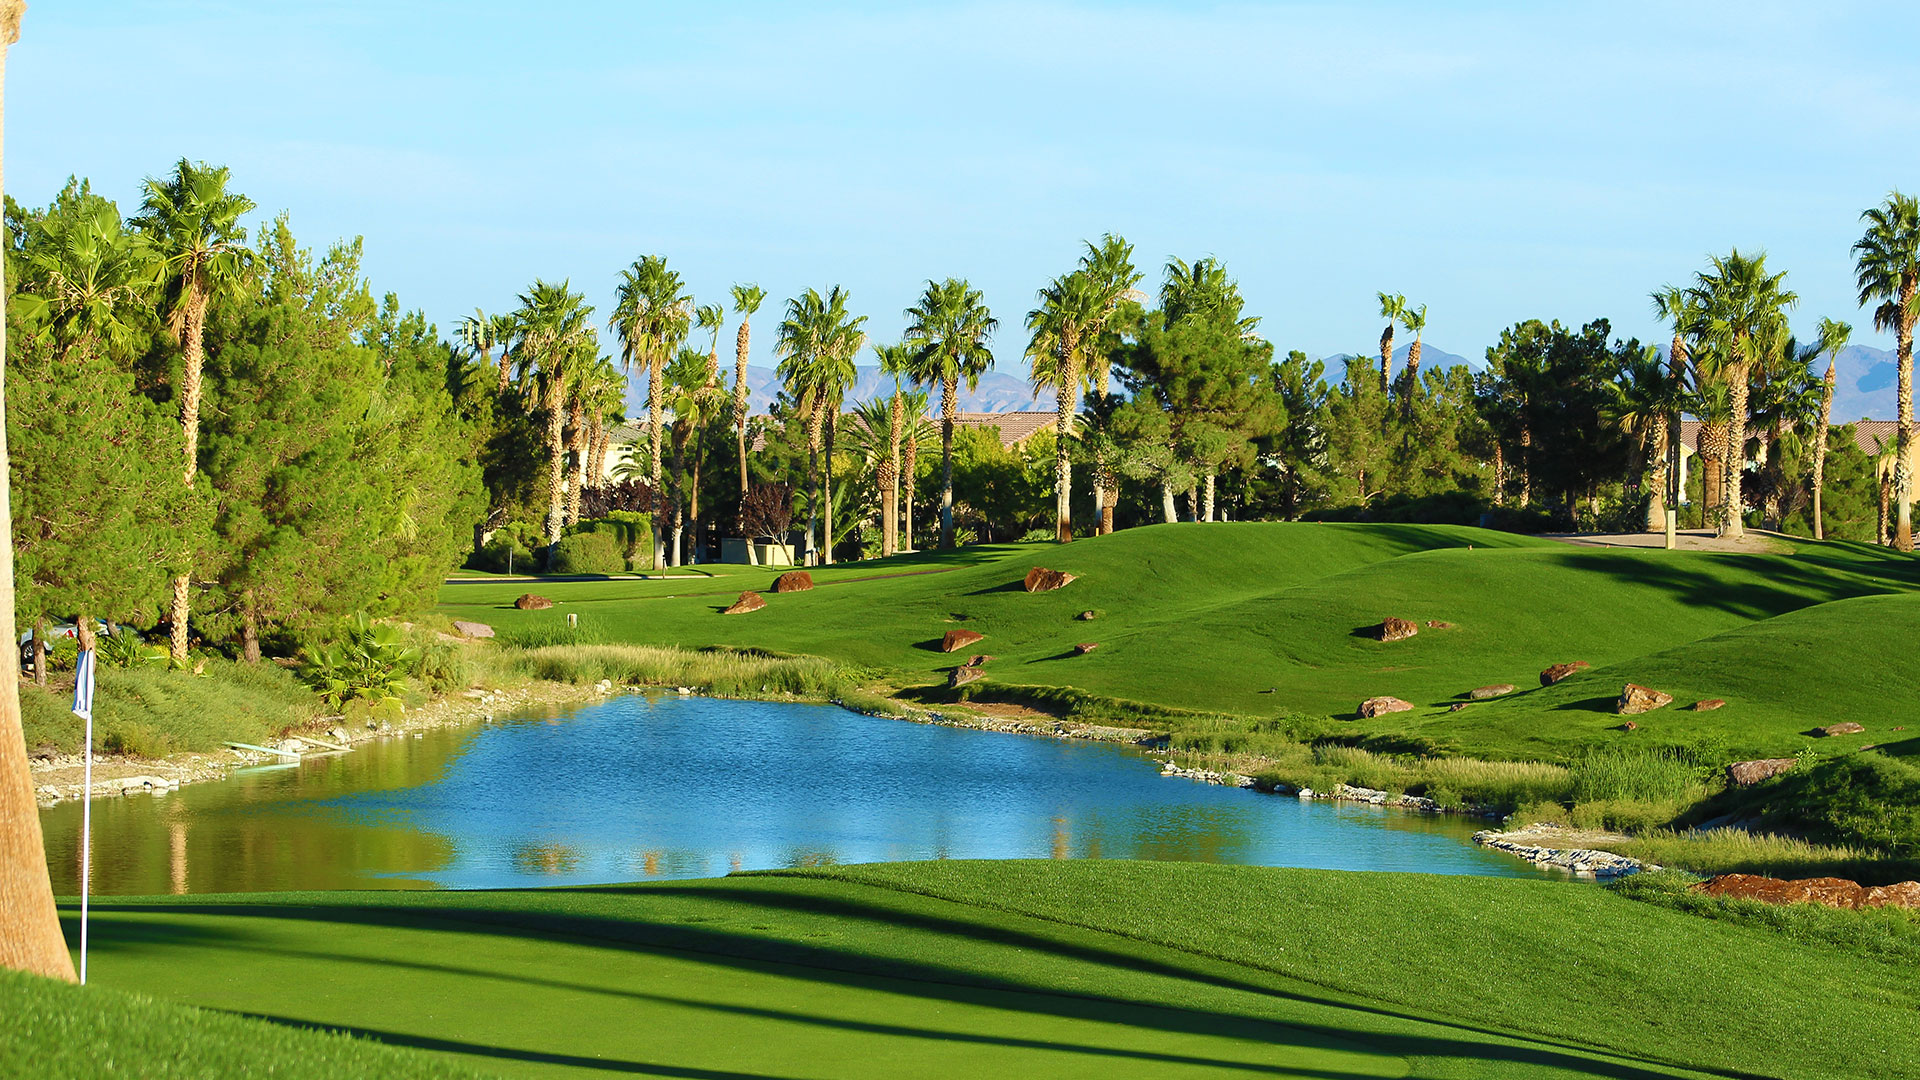 https://bubo.sk/uploads/galleries/8379/beautiful-las-vegas-golf-course.jpg